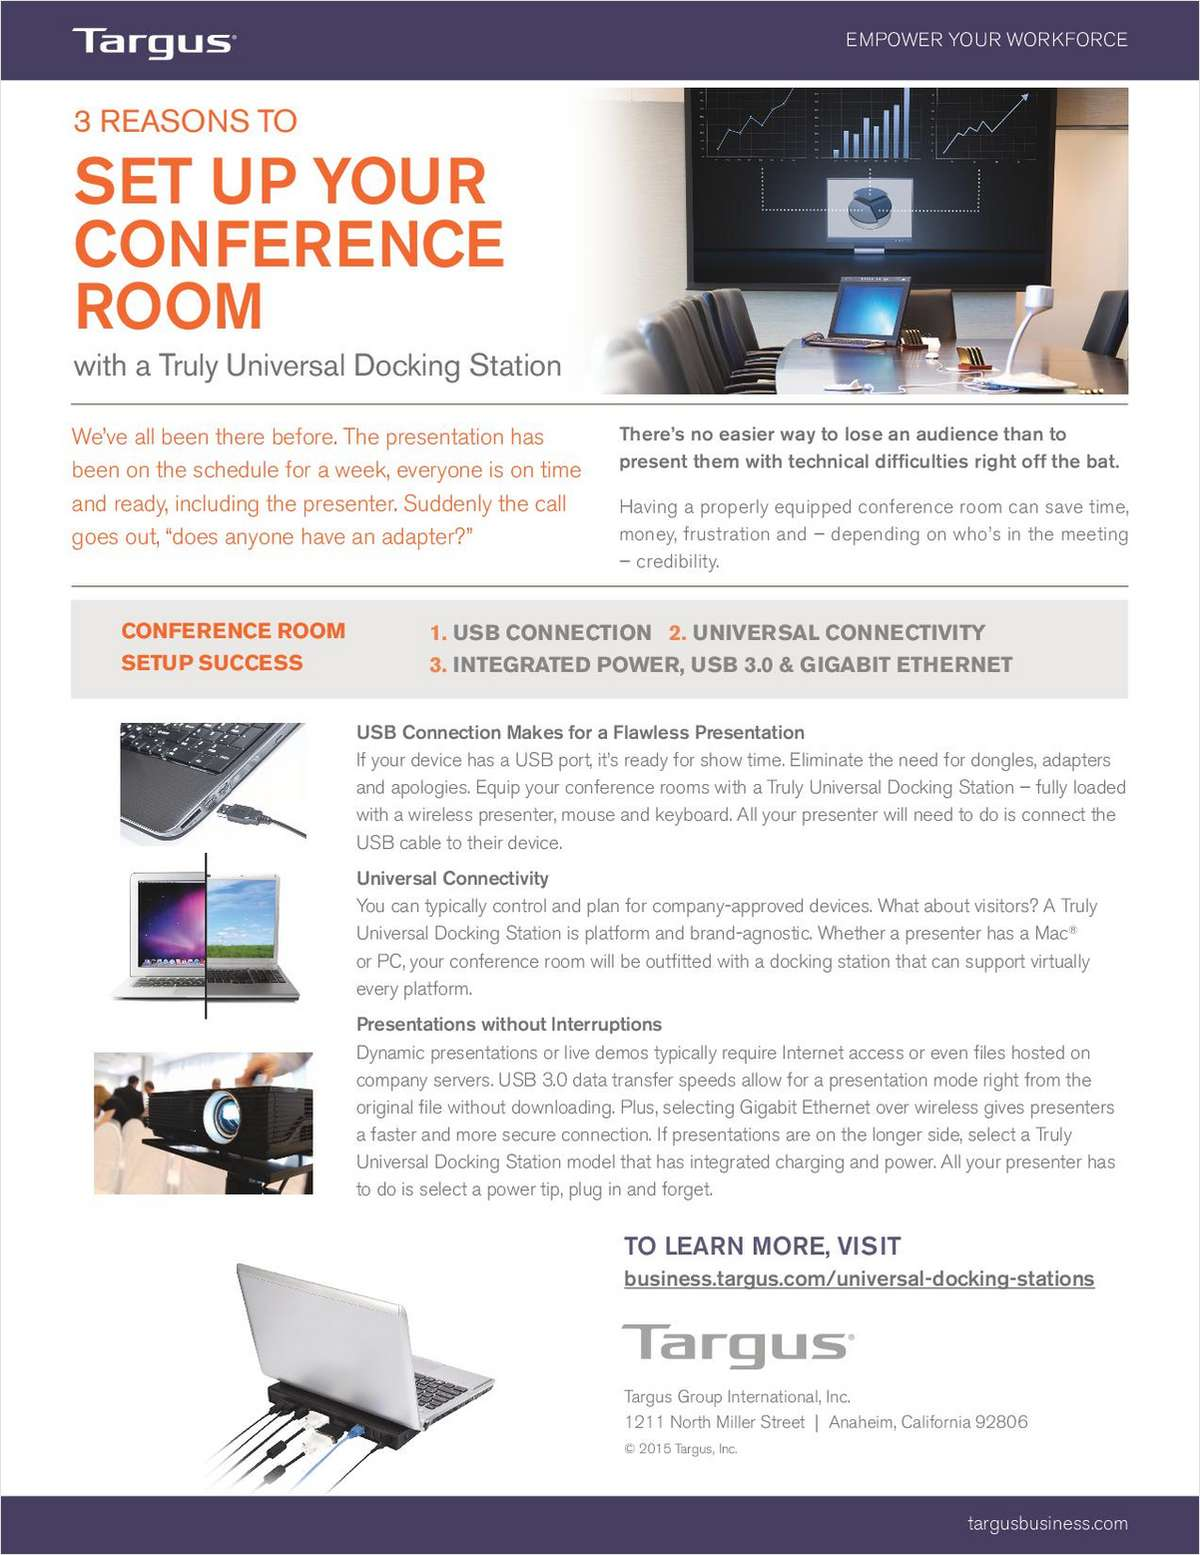 3 Reasons to Set Up Your Conference Room With a Truly Universal Docking Station